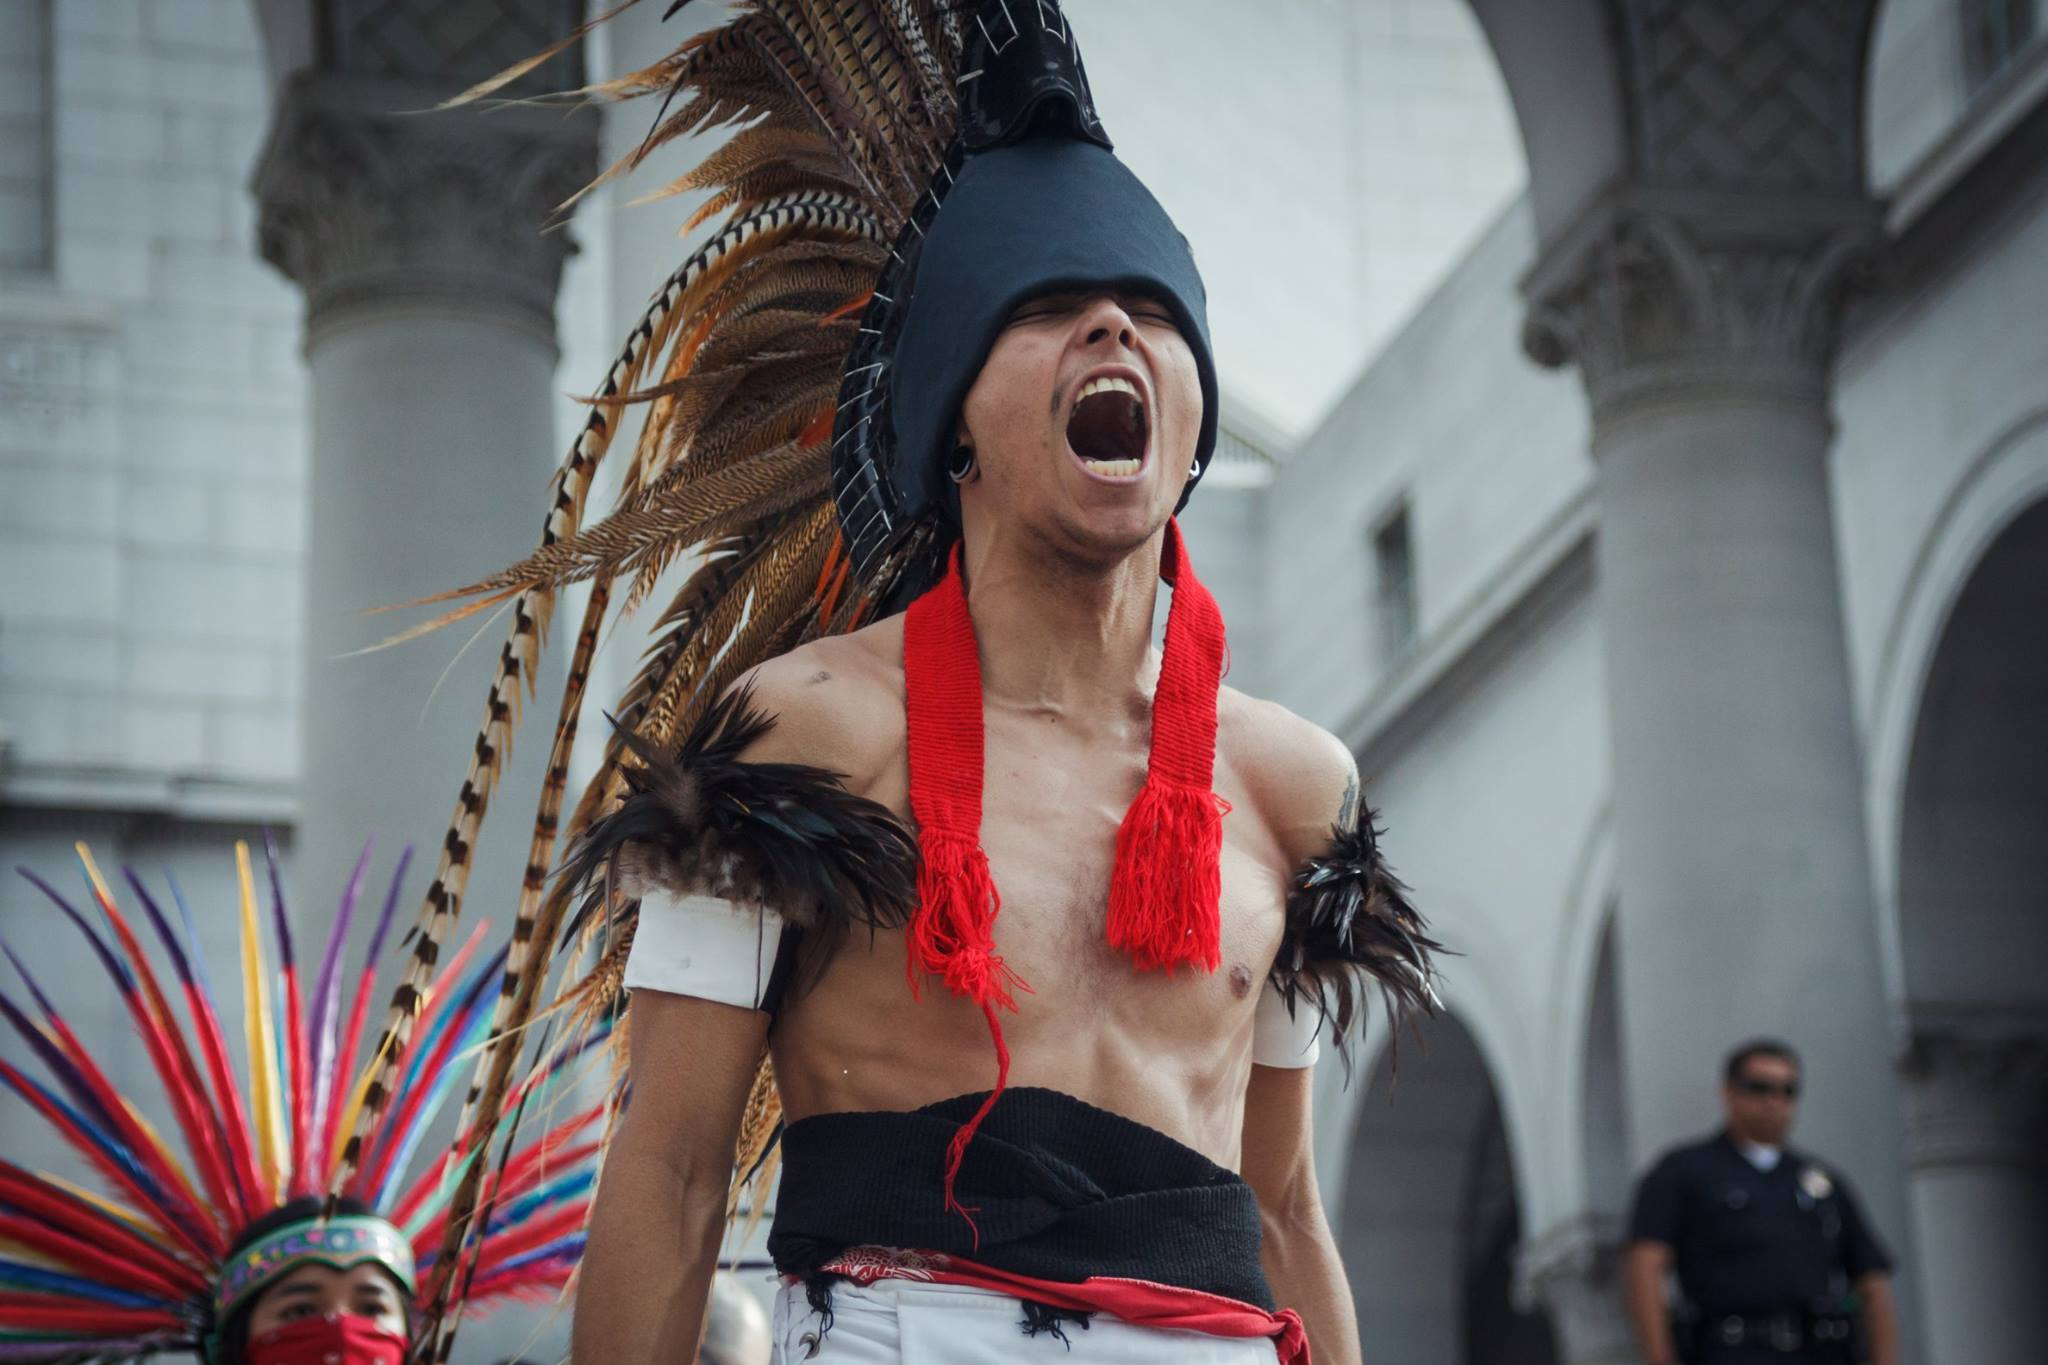 Man wearing a mohawk made of feathers is shown shouting